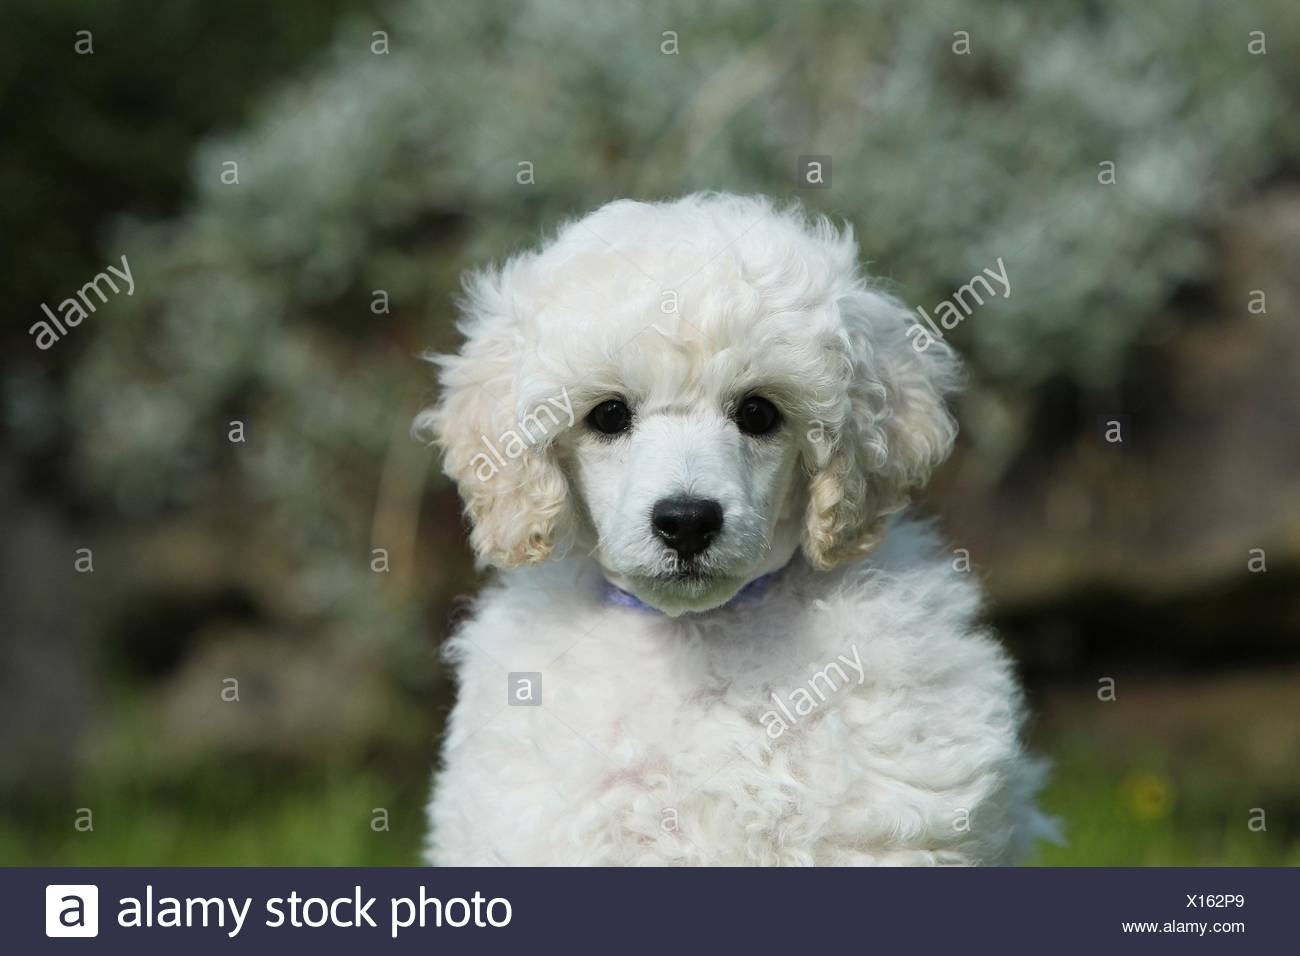 Standard Poodle Puppy Stock Photo Alamy